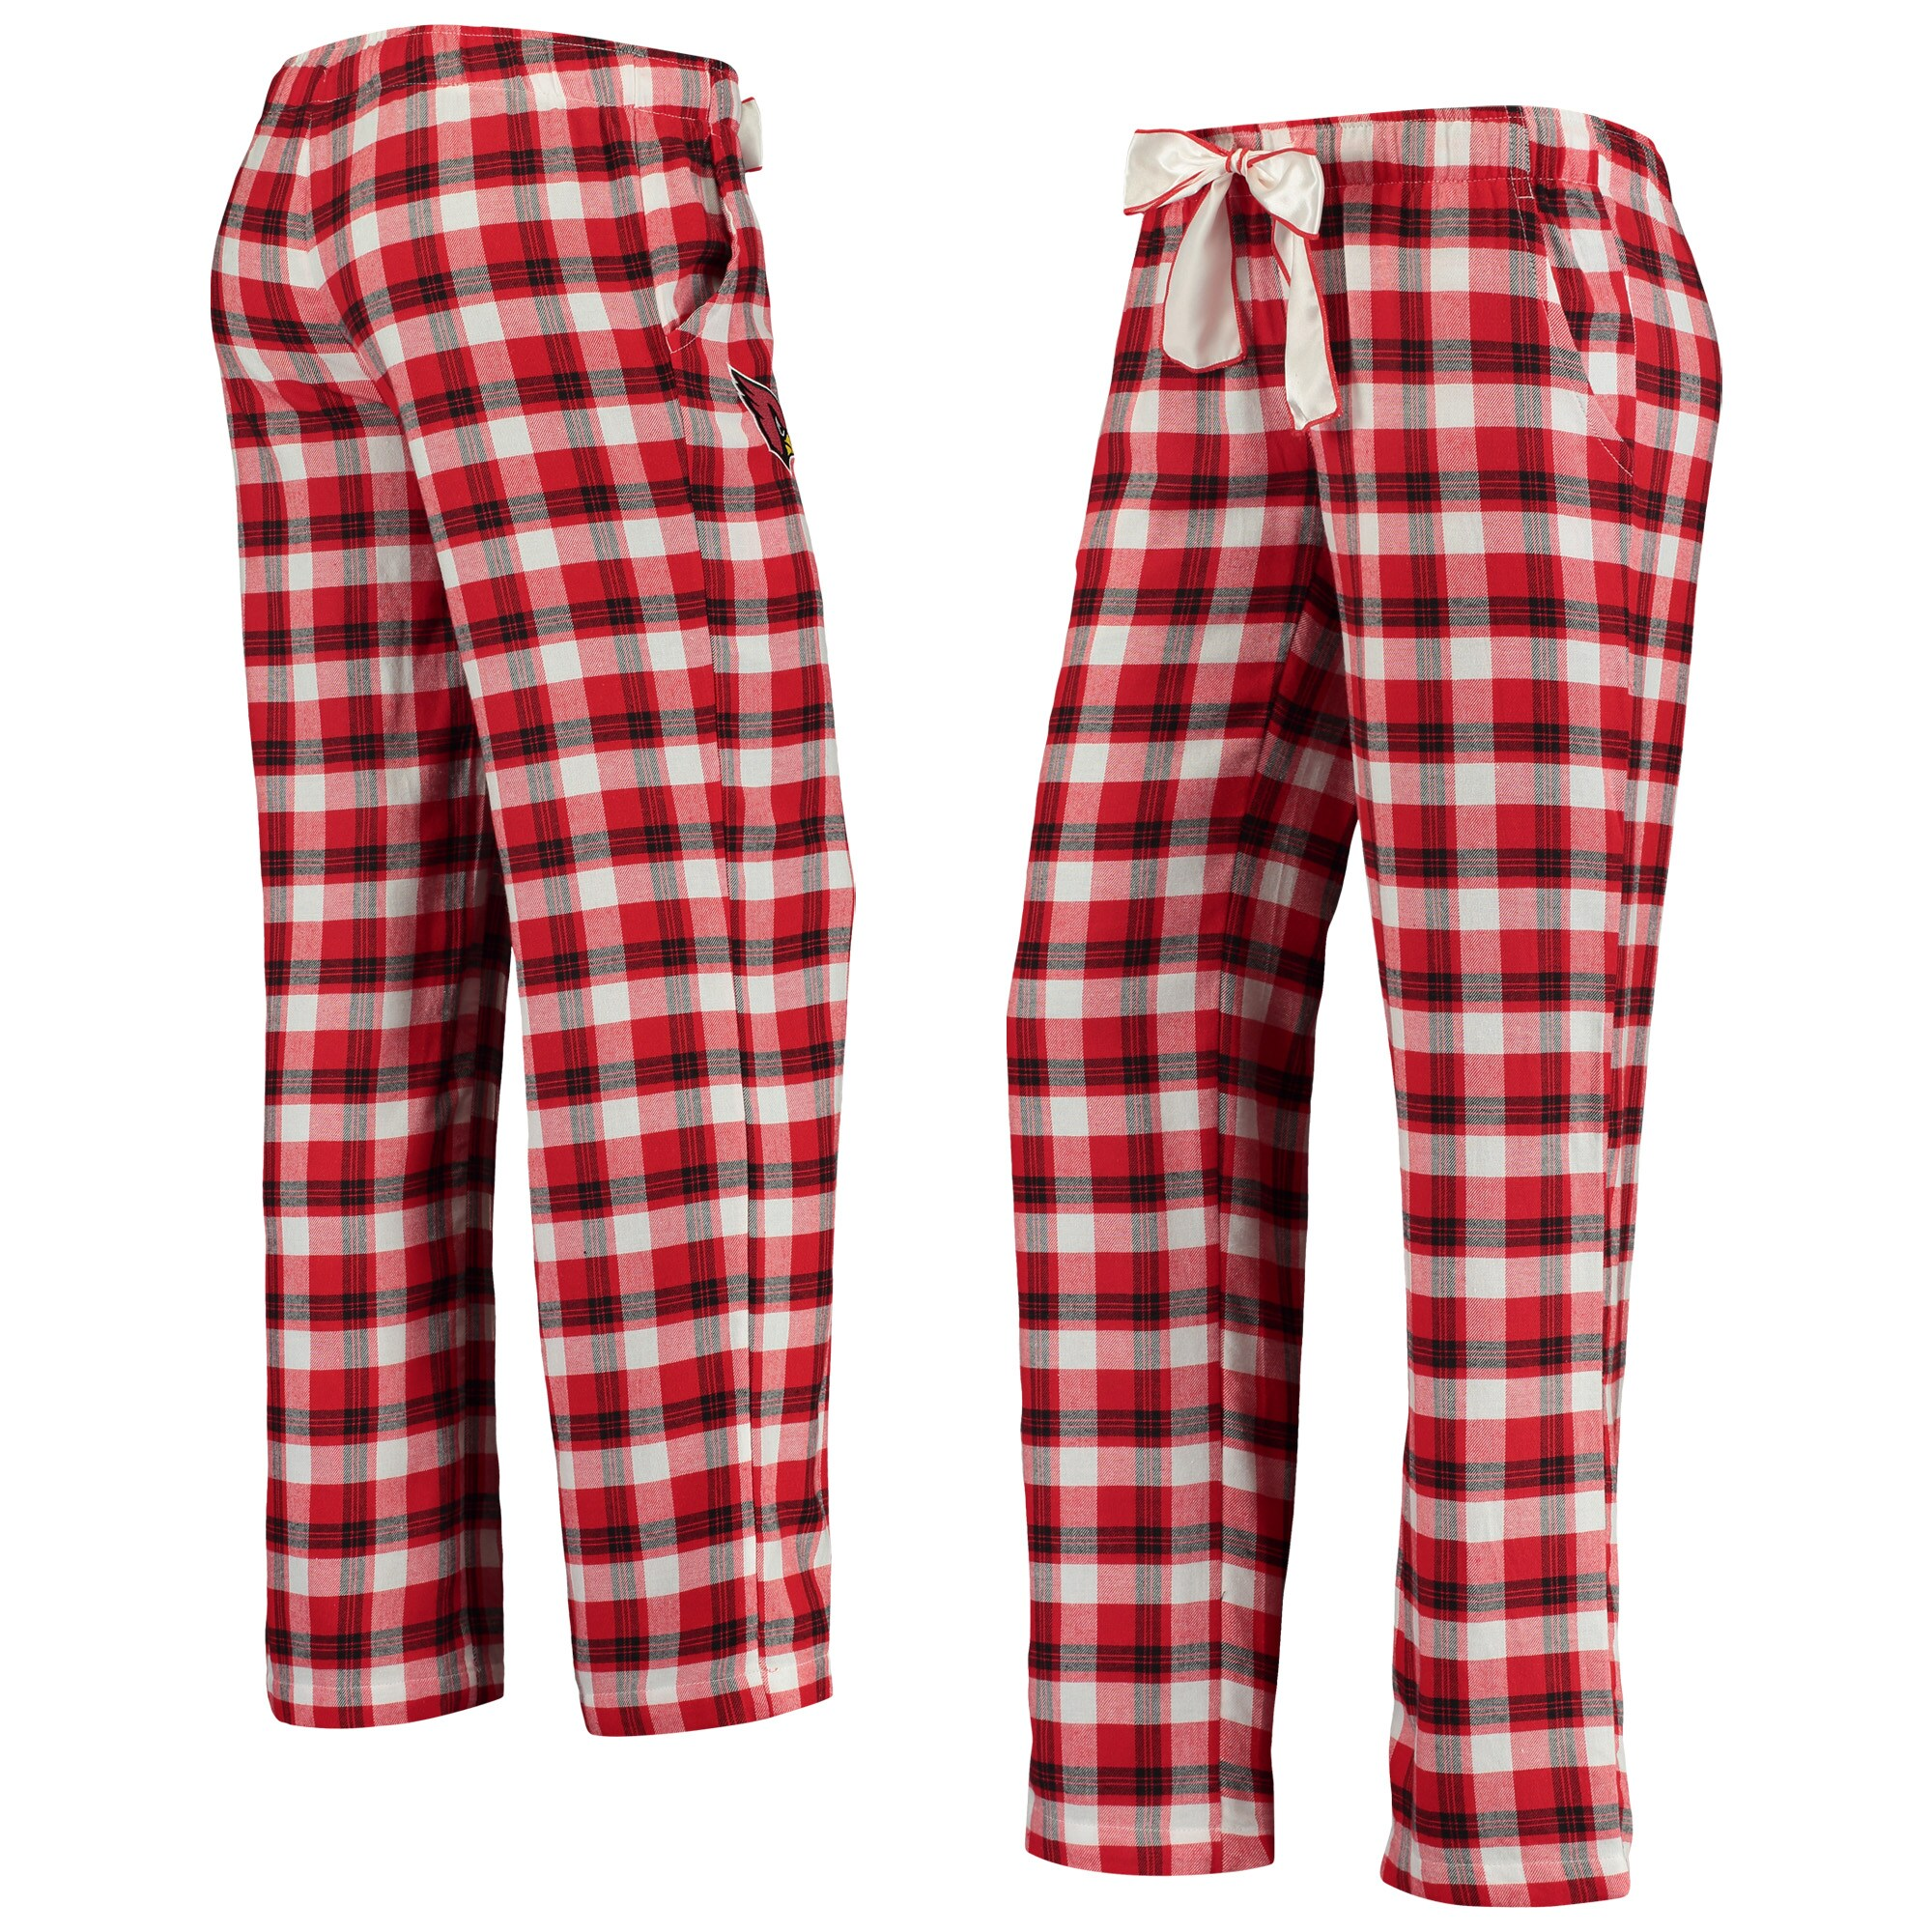 Arizona Cardinals Concepts Sport Women's Piedmont Flannel Sleep Pants - Cardinal/Black